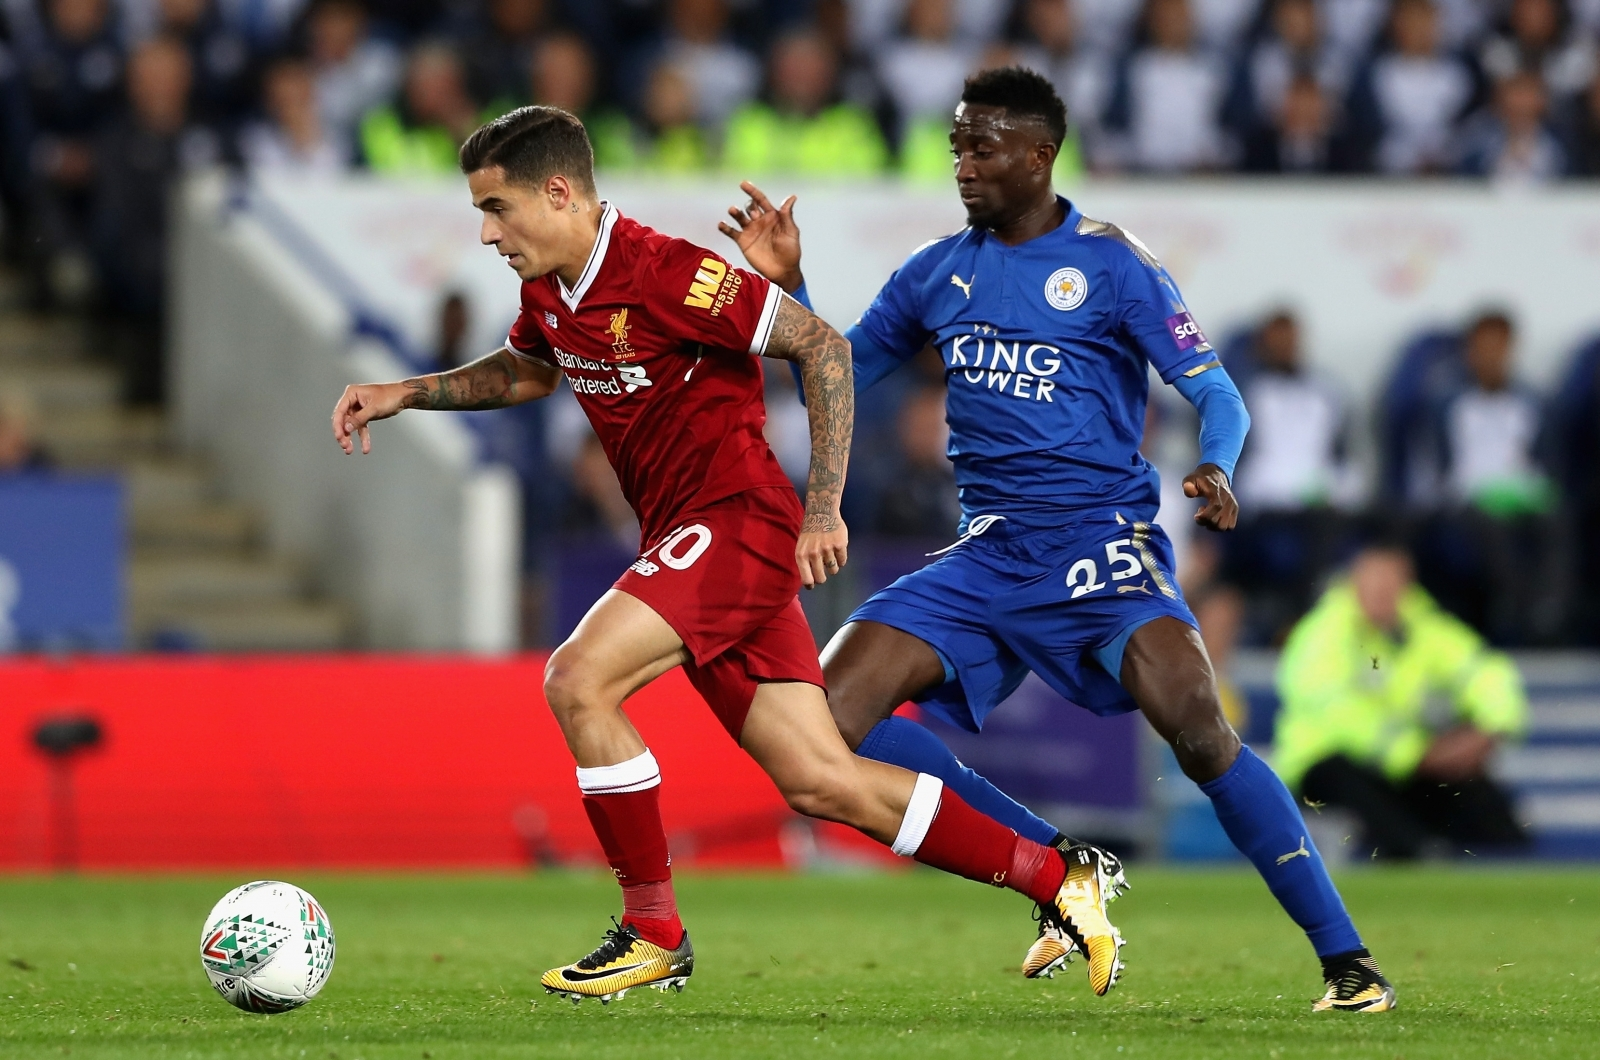 Leicester City 0-0 Liverpool: Carabao Cup third round LIVE